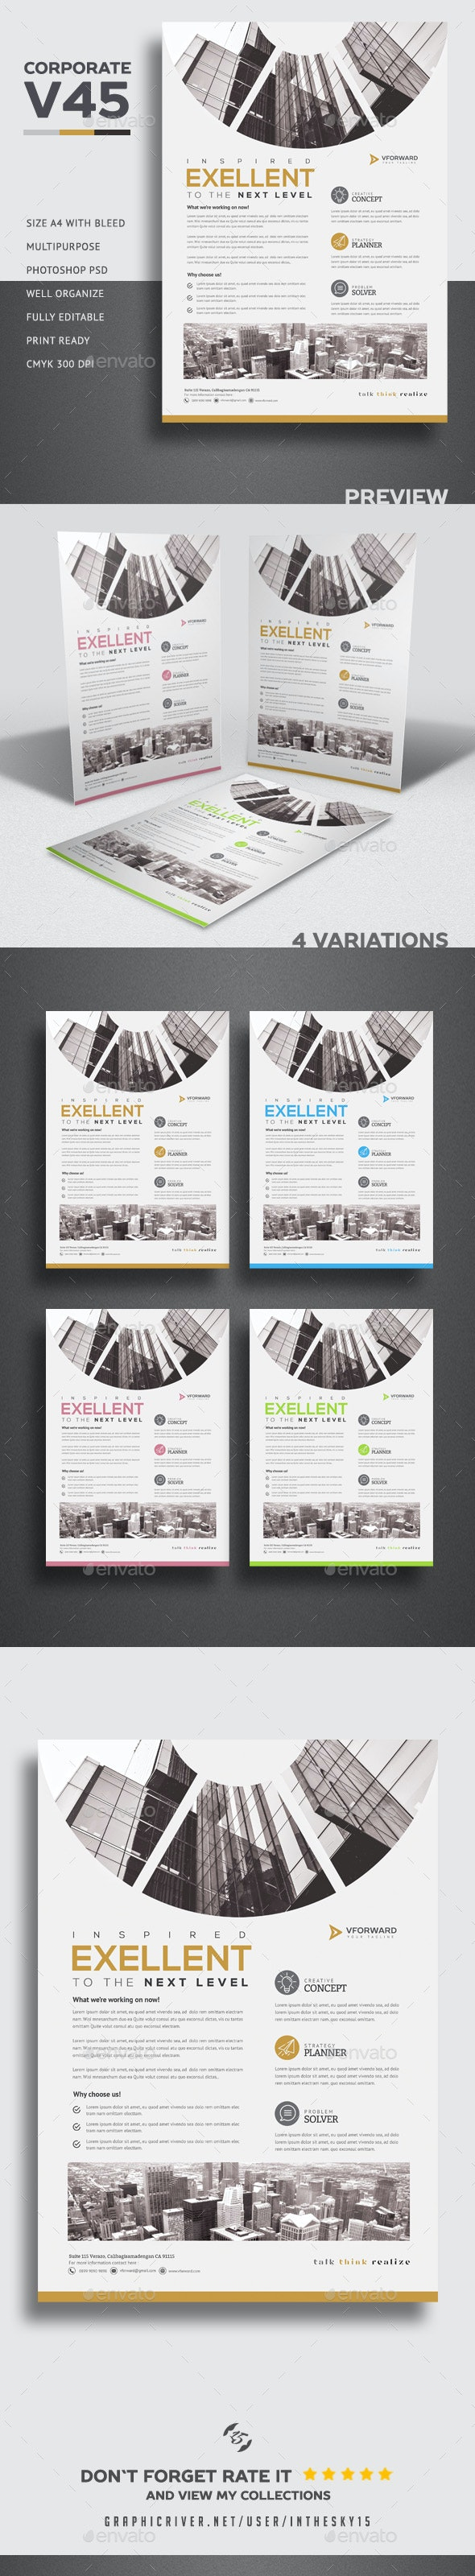 Corporate V45 Flyer - Corporate Flyers